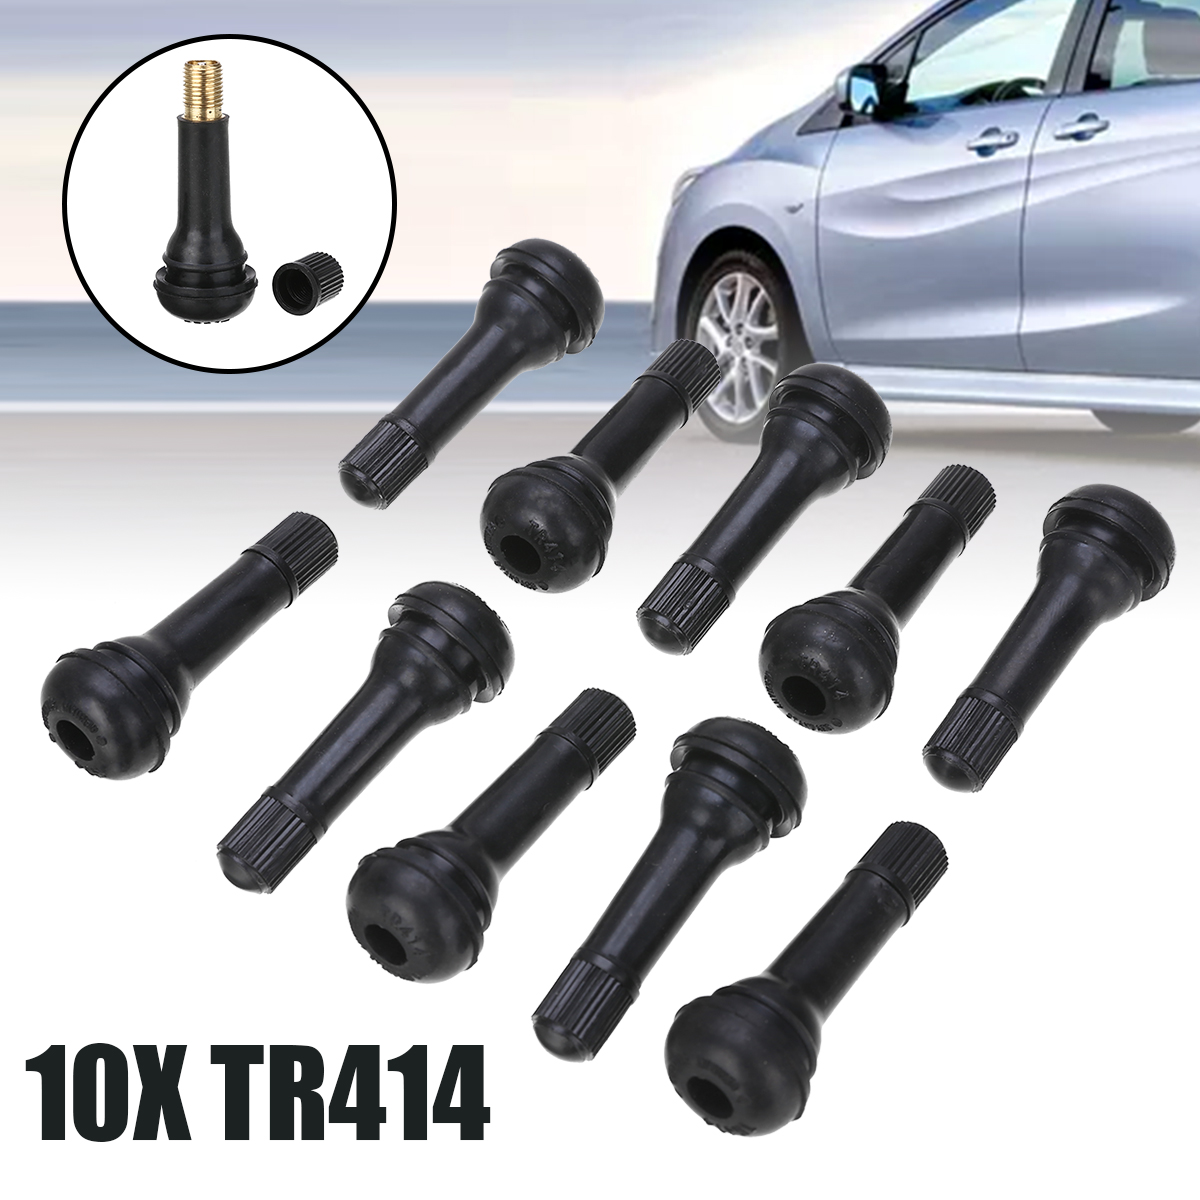 Wheels Tires Parts 10pcs TR414 Black Rubber Snap-in Car Wheel Tyre Tubeless Tire Tyre Valve Stems Dust Caps Car Auto Accessories